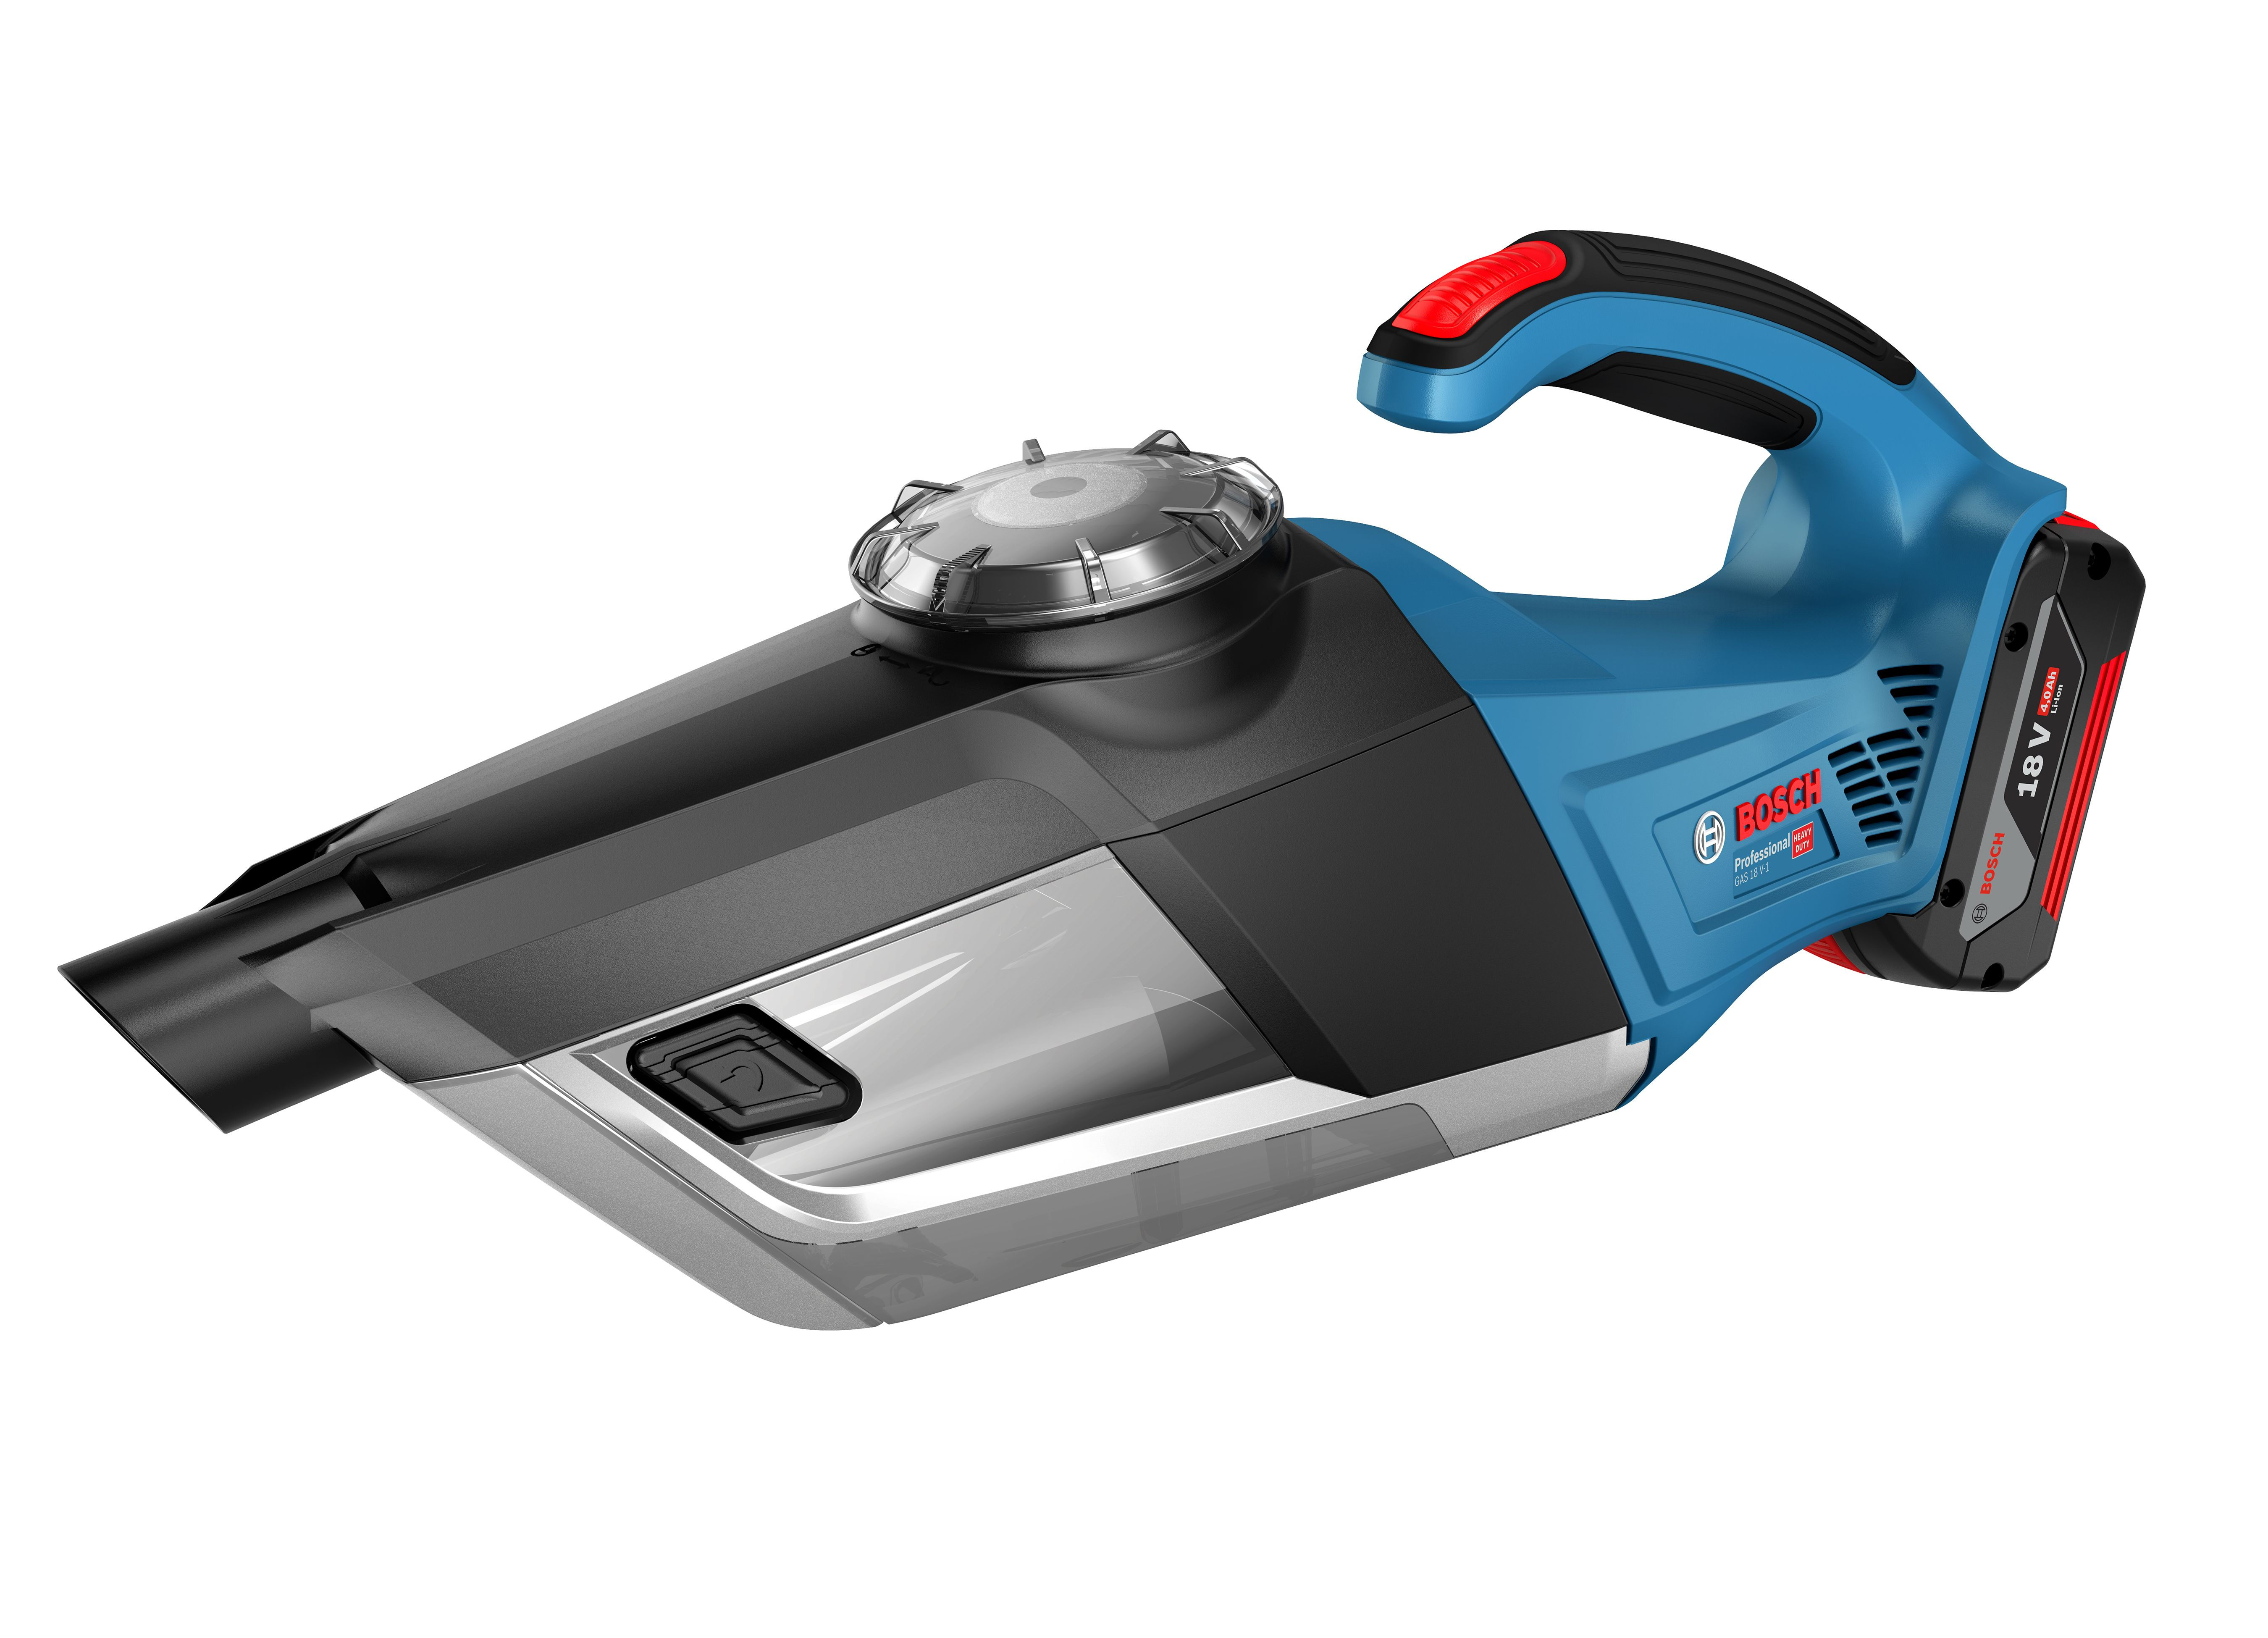 Dry Extractor For Rapid Final Cleaning The Gas 18v 1 Professional From Bosch For Professionals